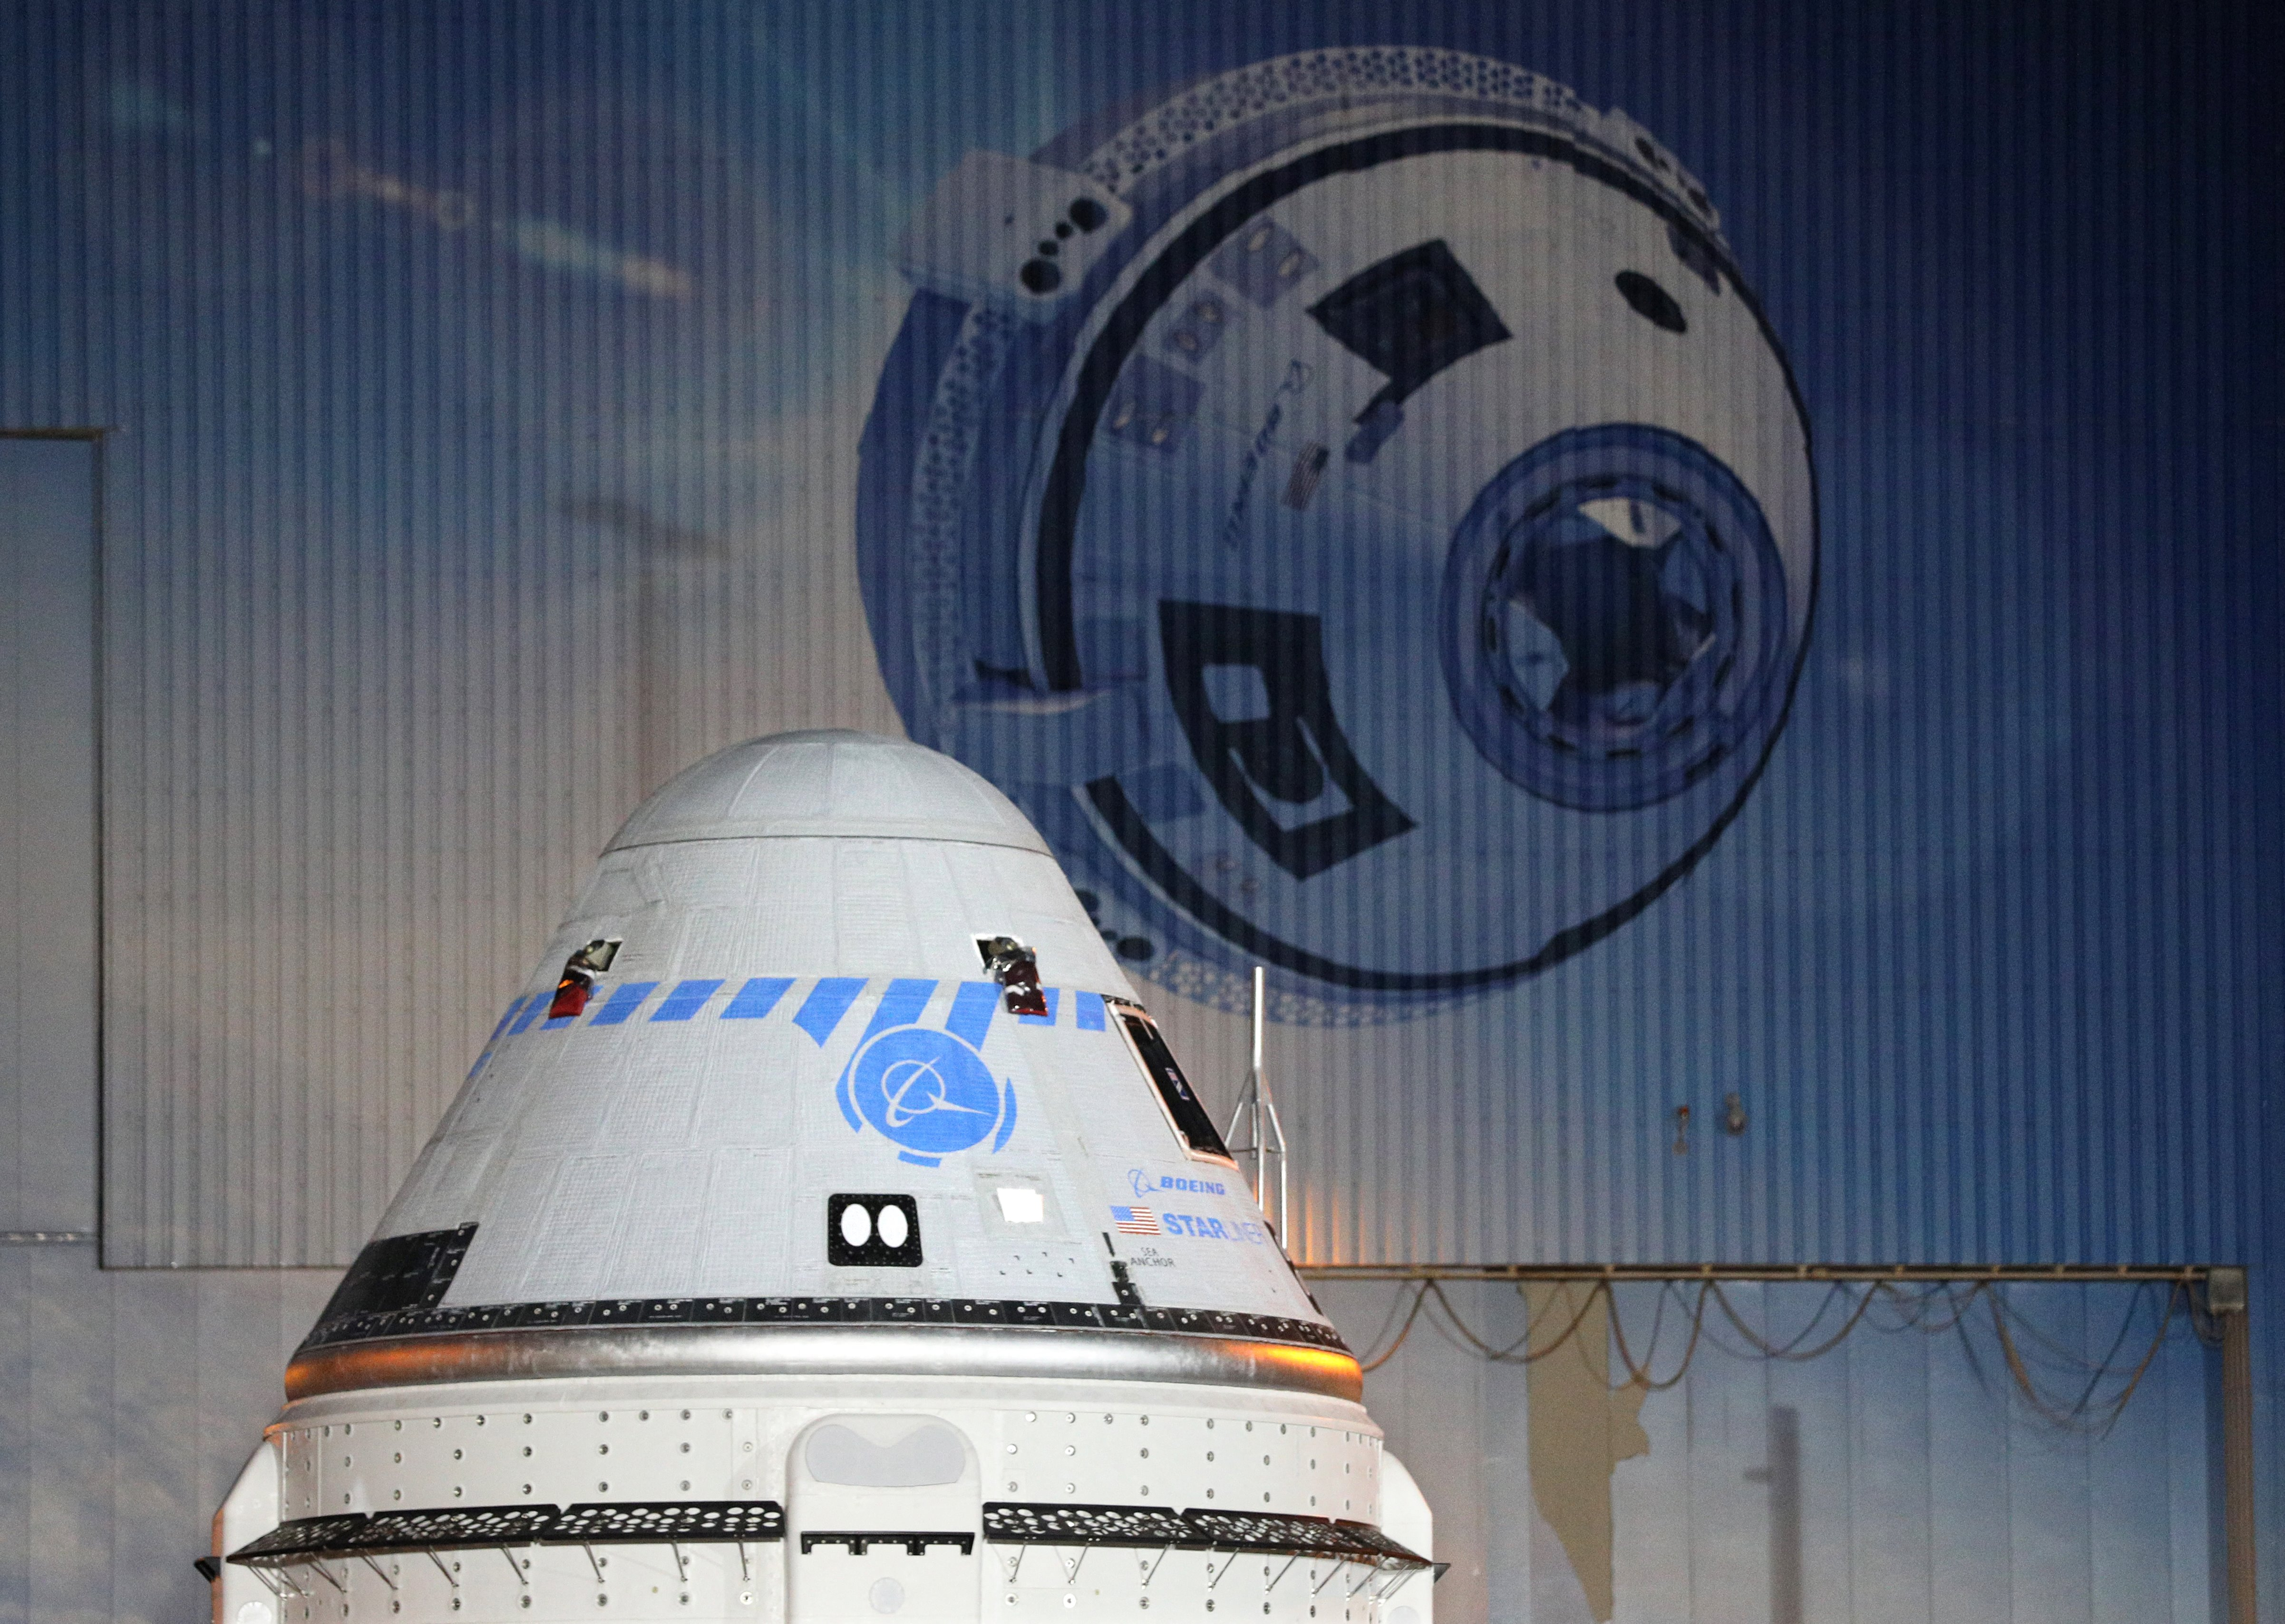 NASA clears Boeing Starliner for July 30th test flight to ISS - Engadget